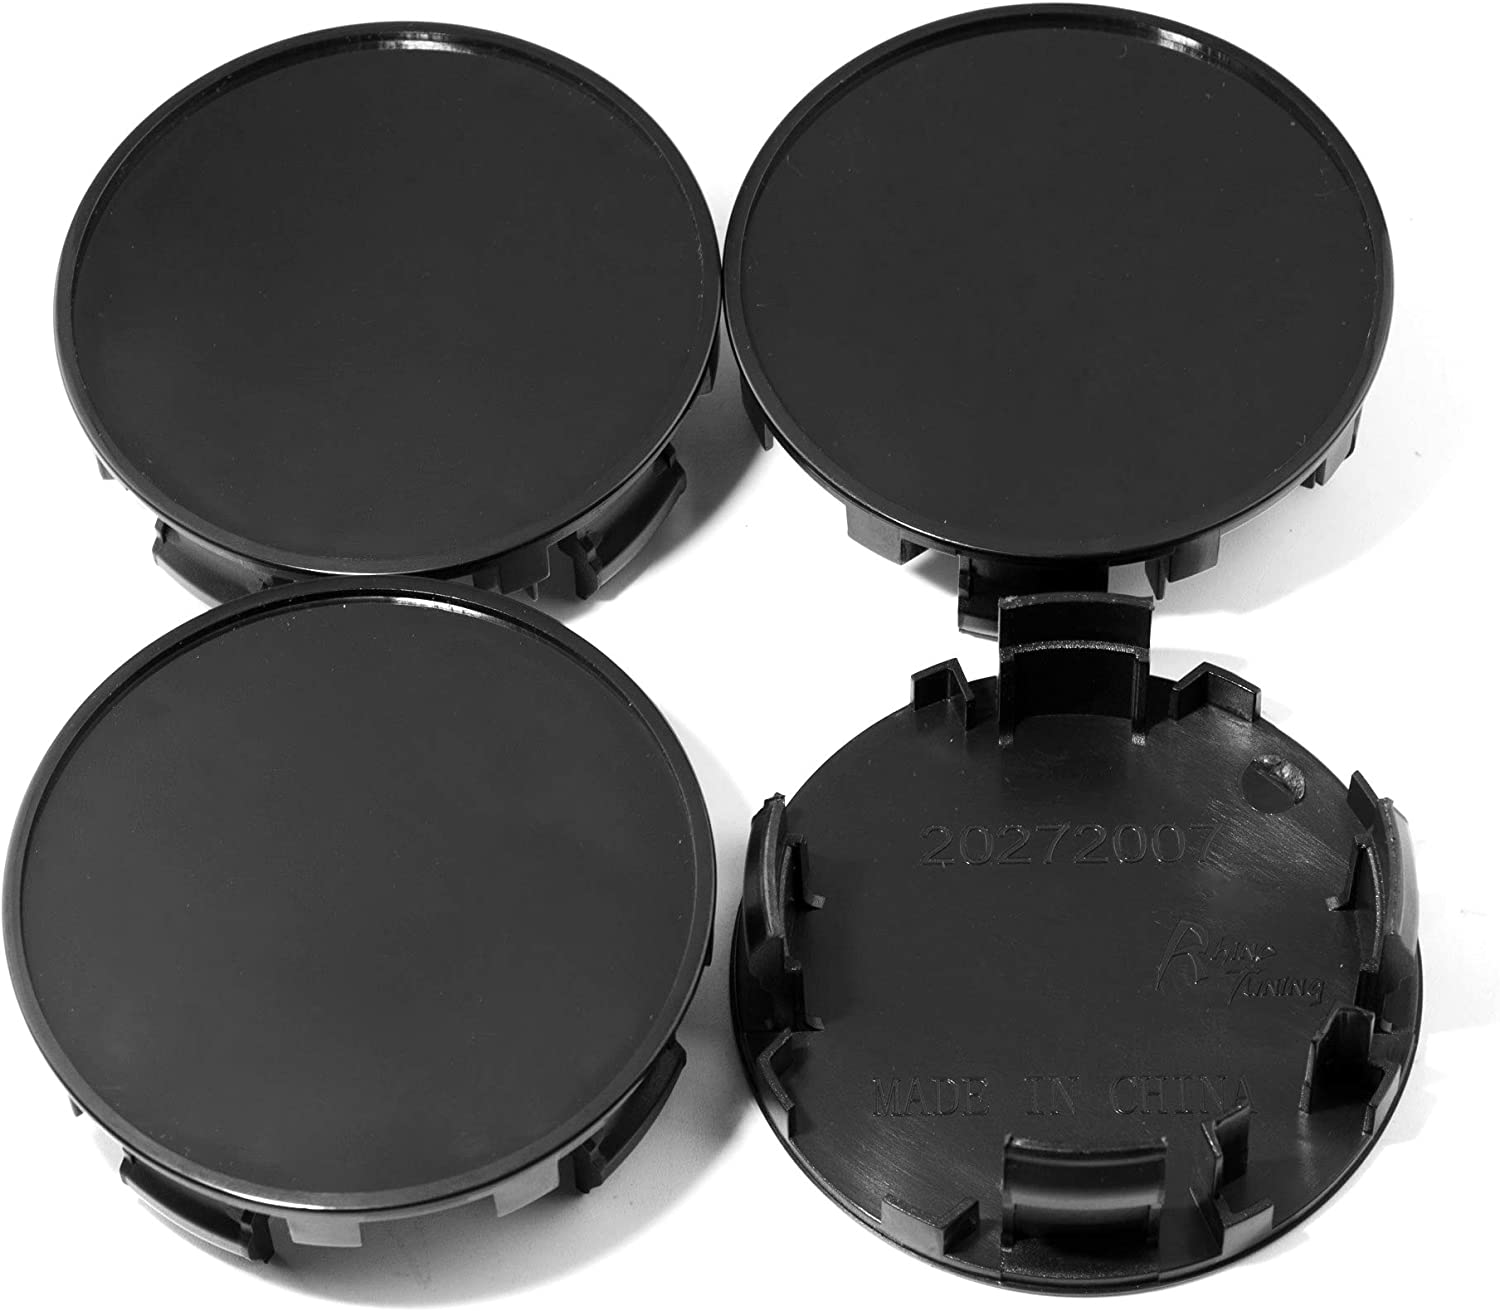 2.5in // 55.7mm Wheel Hub Center Caps Black a Set of 4pcs for #42603-24250 42603-48060#GS 300 1998-2005 RX 300 1999-2003 RTRHINOTUNING 63.5mm 2.19 in